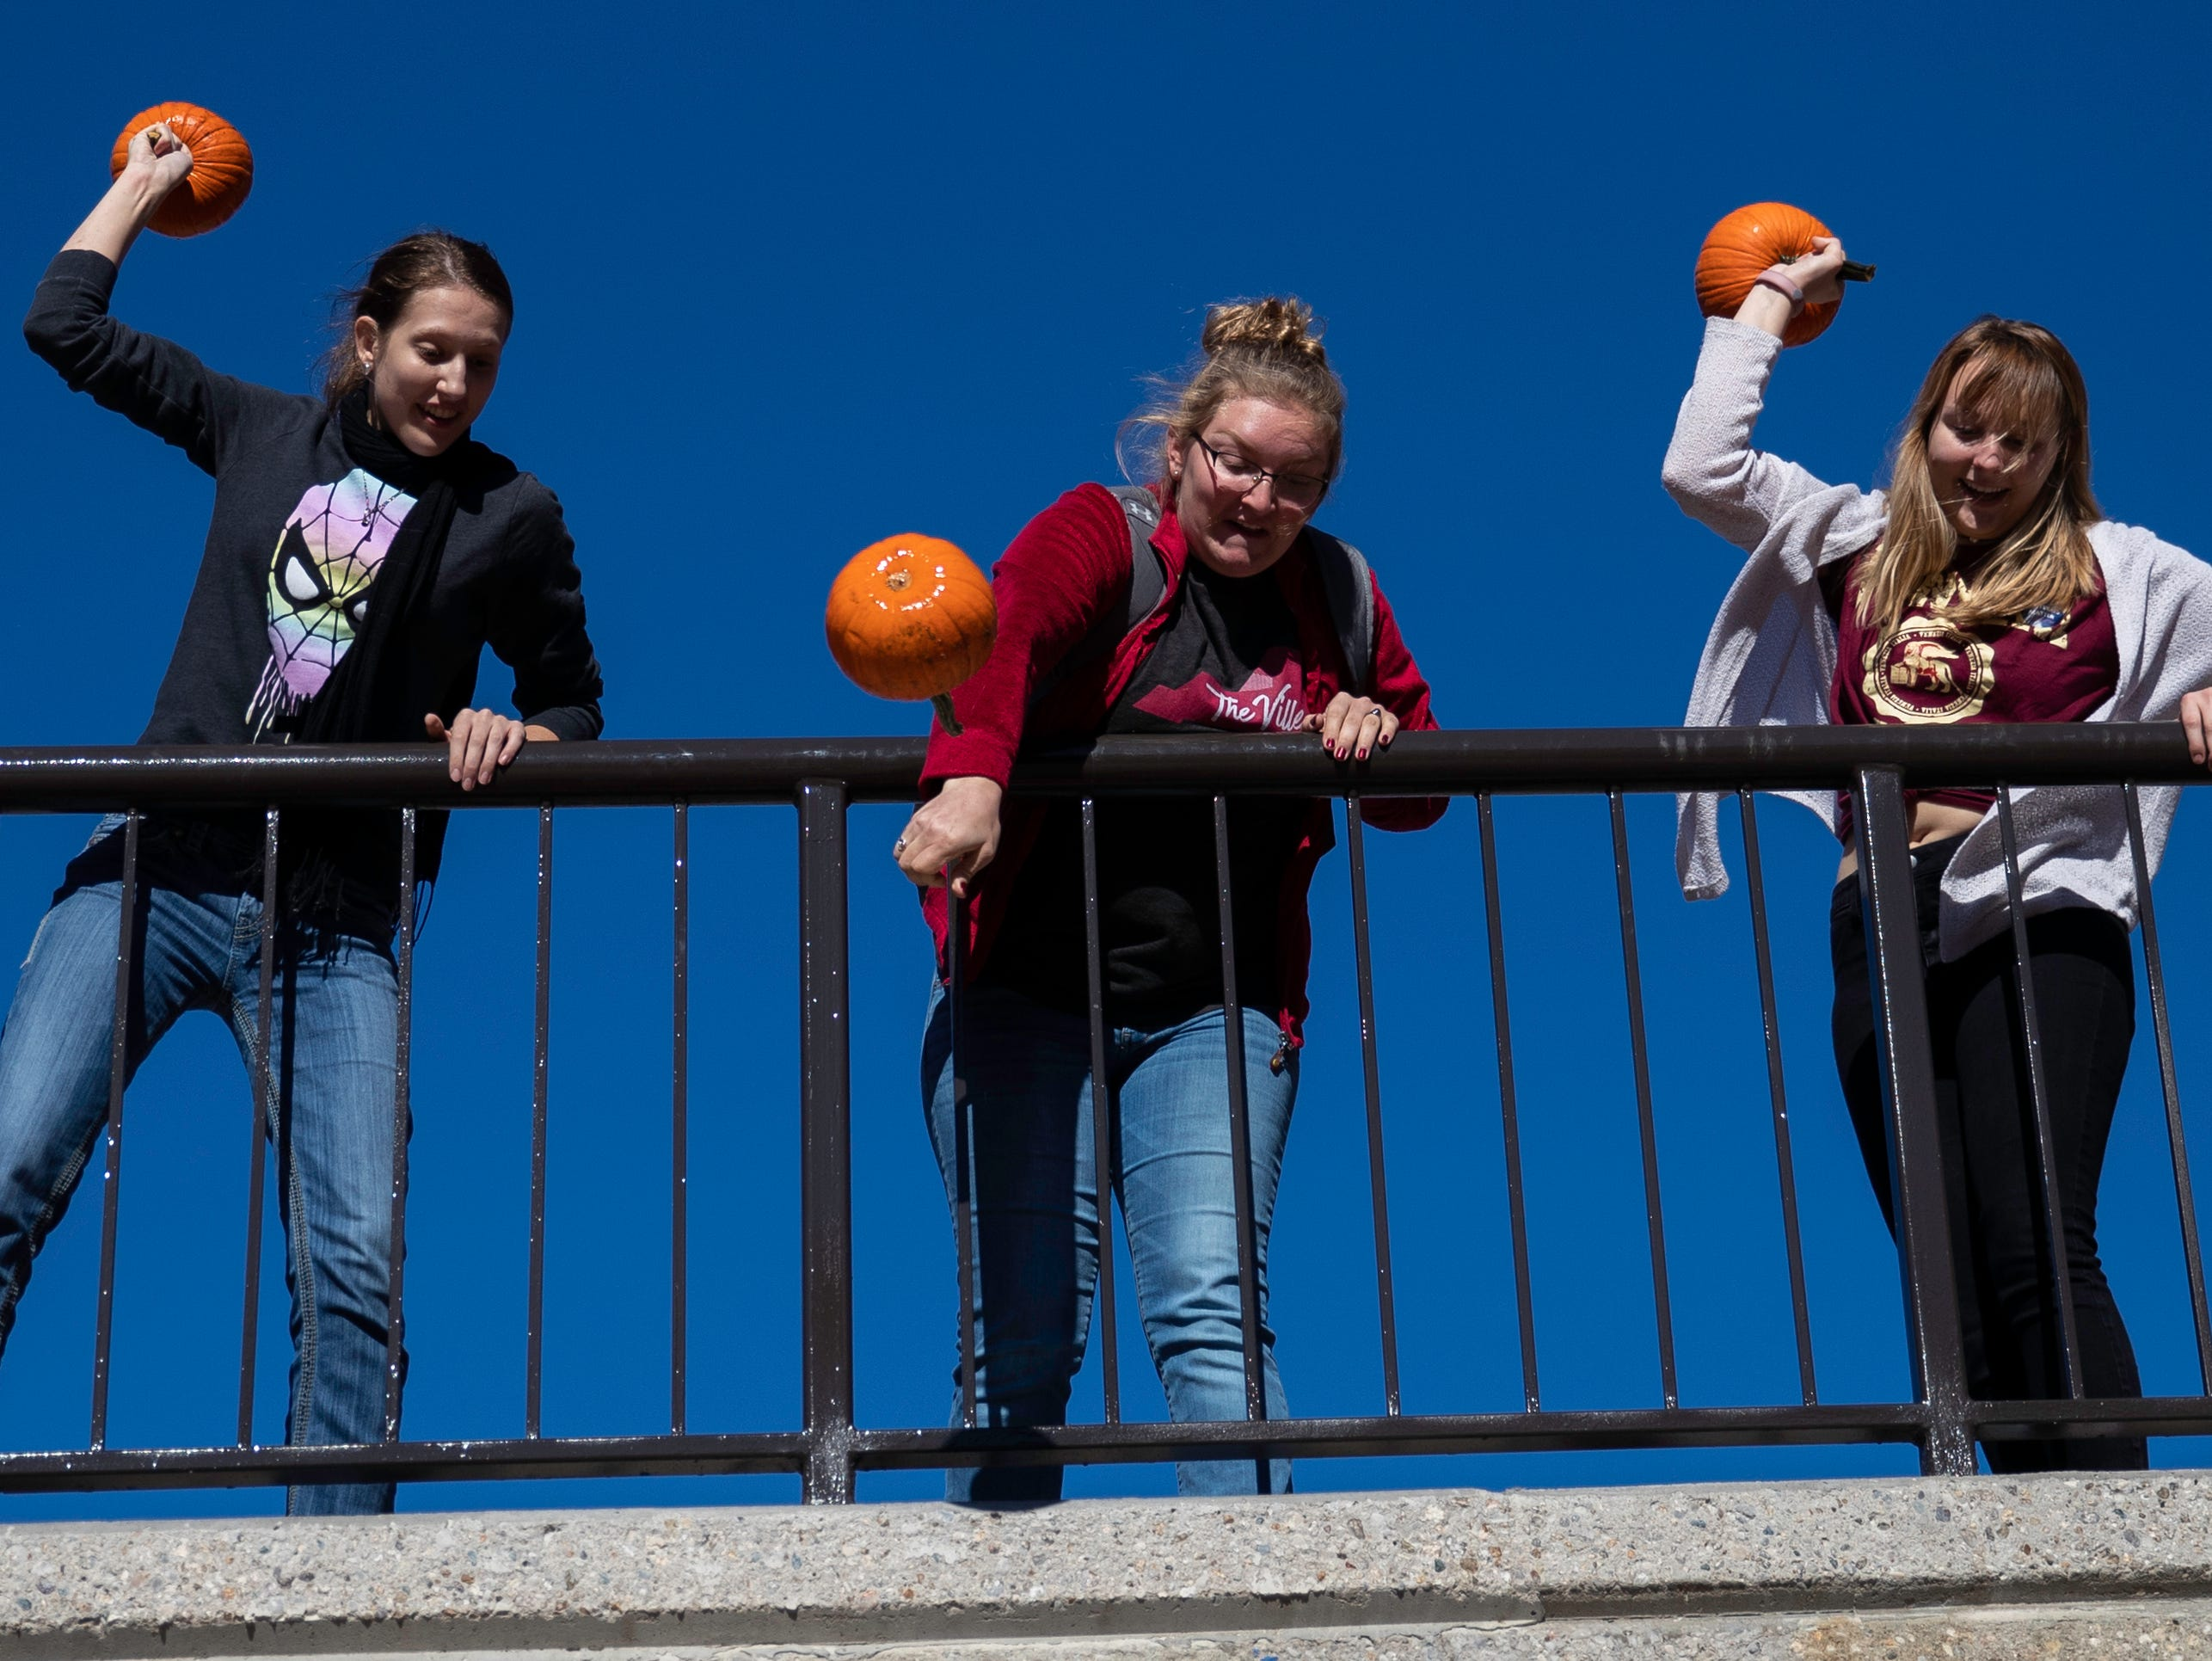 Students and staff members hurled pumpkins off the SAC Ramp, Tuesday, Nov. 6, 2018 in Louisville Ky. The annual Pumpkin Smash in collaboration with the Office of Health Promotion, benefits UofL's Community Composting Project with all smashed pumpkins going into the compost to feed various community gardens, on and off UofL's campus.